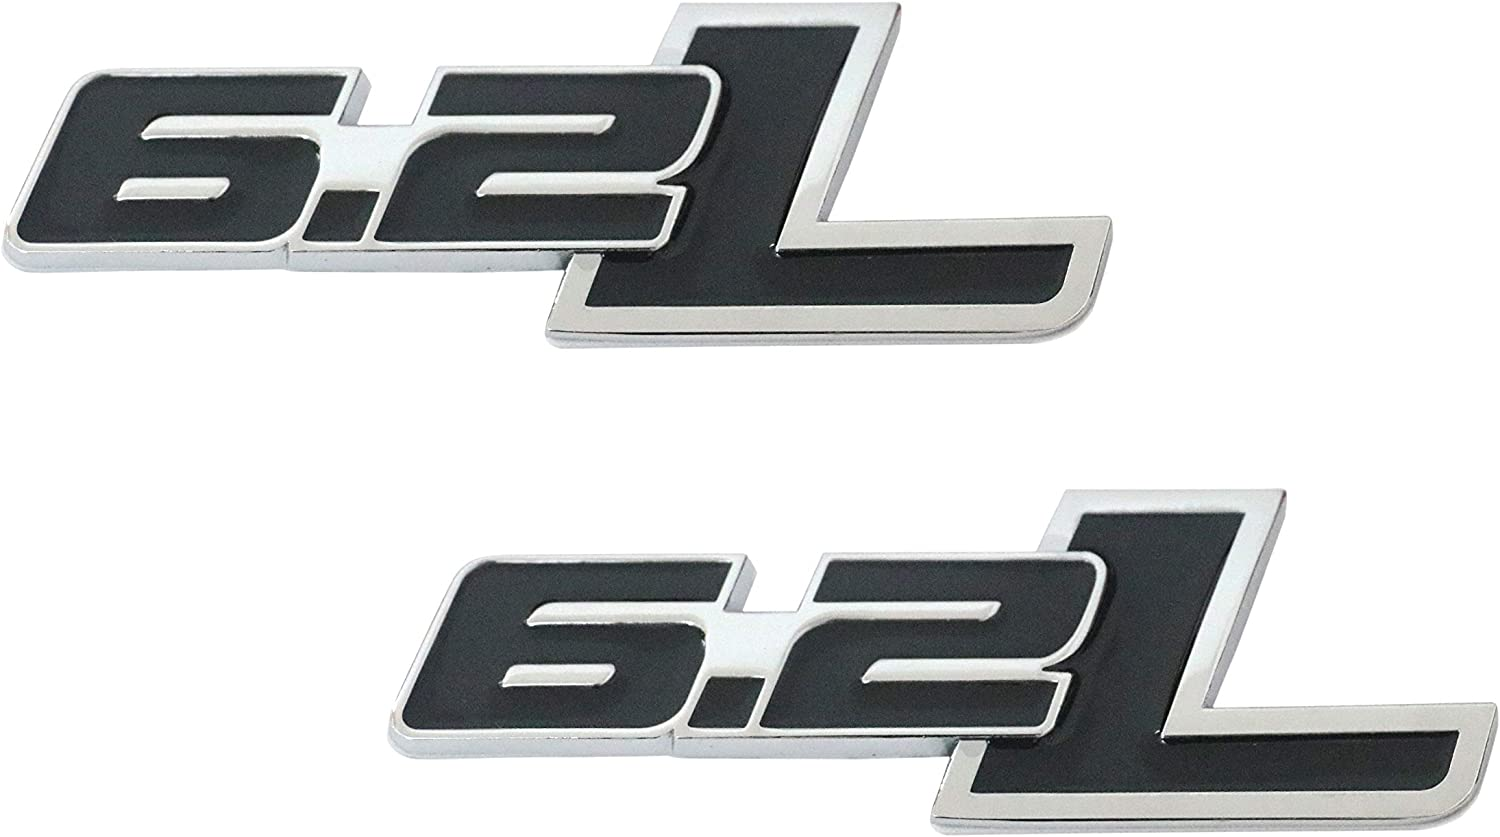 2X Metal Black 6.2L Silver Border 6.2L Emblem Skirt Bumper Sticker Fender Side Badge Decal for Ford F150 F250 F350 Dodge Ram 1500 2500 3500 Chevrolet Cadillac GMC Vauxhall